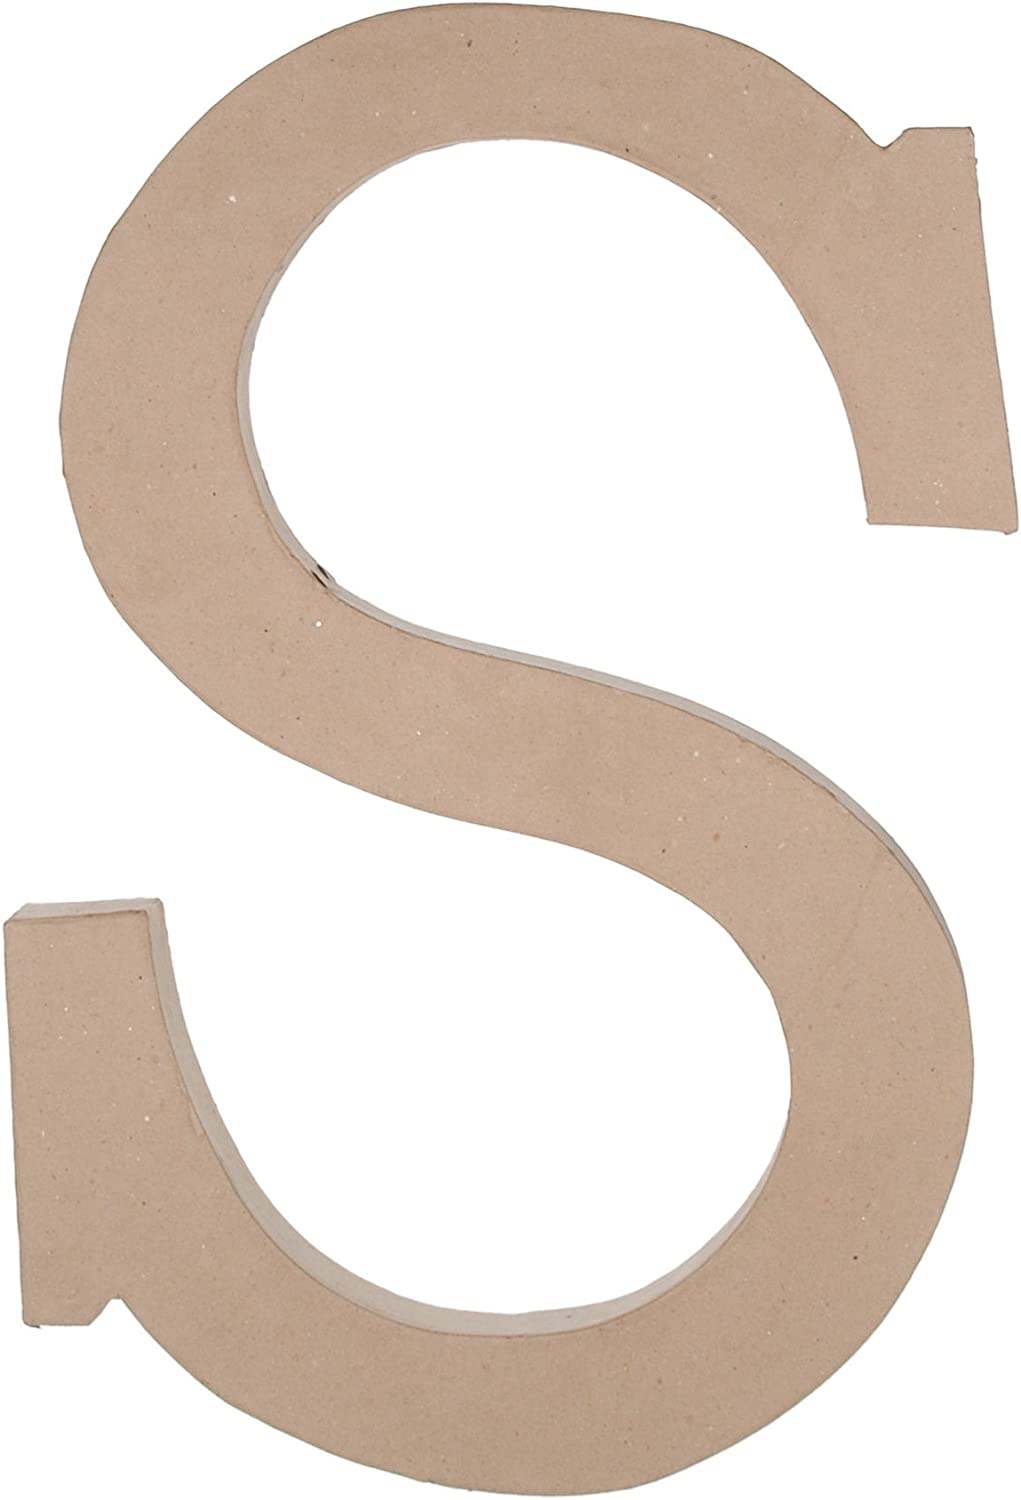 Darice 2862-B Paper Mache Letter 1ct Party Decoration B 8 Natural